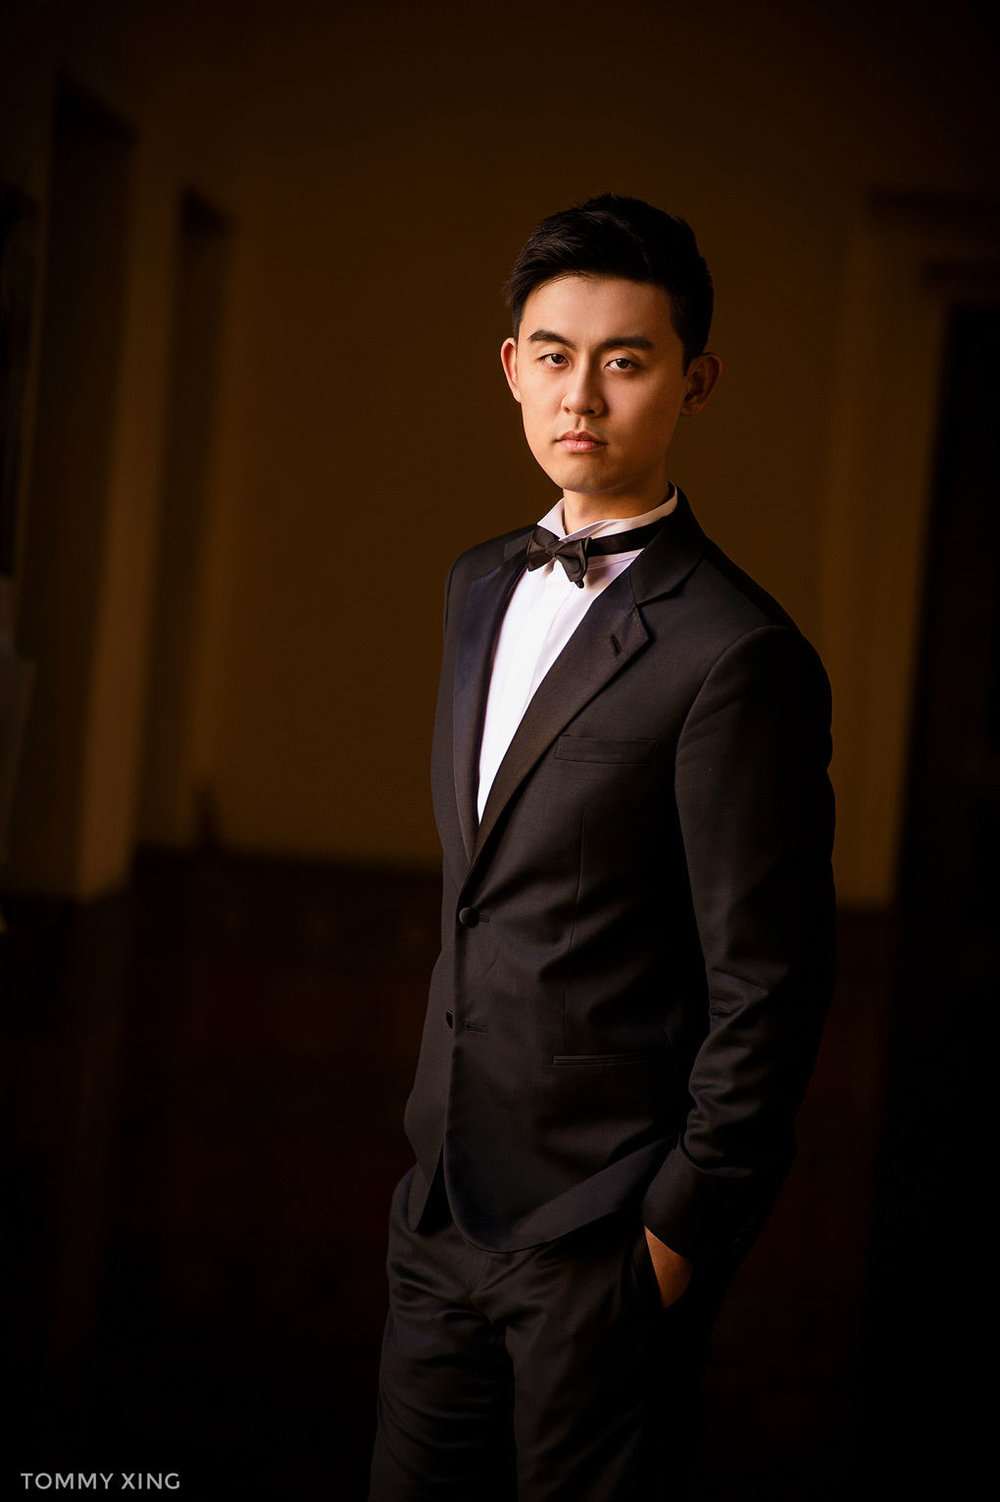 洛杉矶婚纱照 - Los Angeles Pre Wedding - Tommy Xing05.jpg